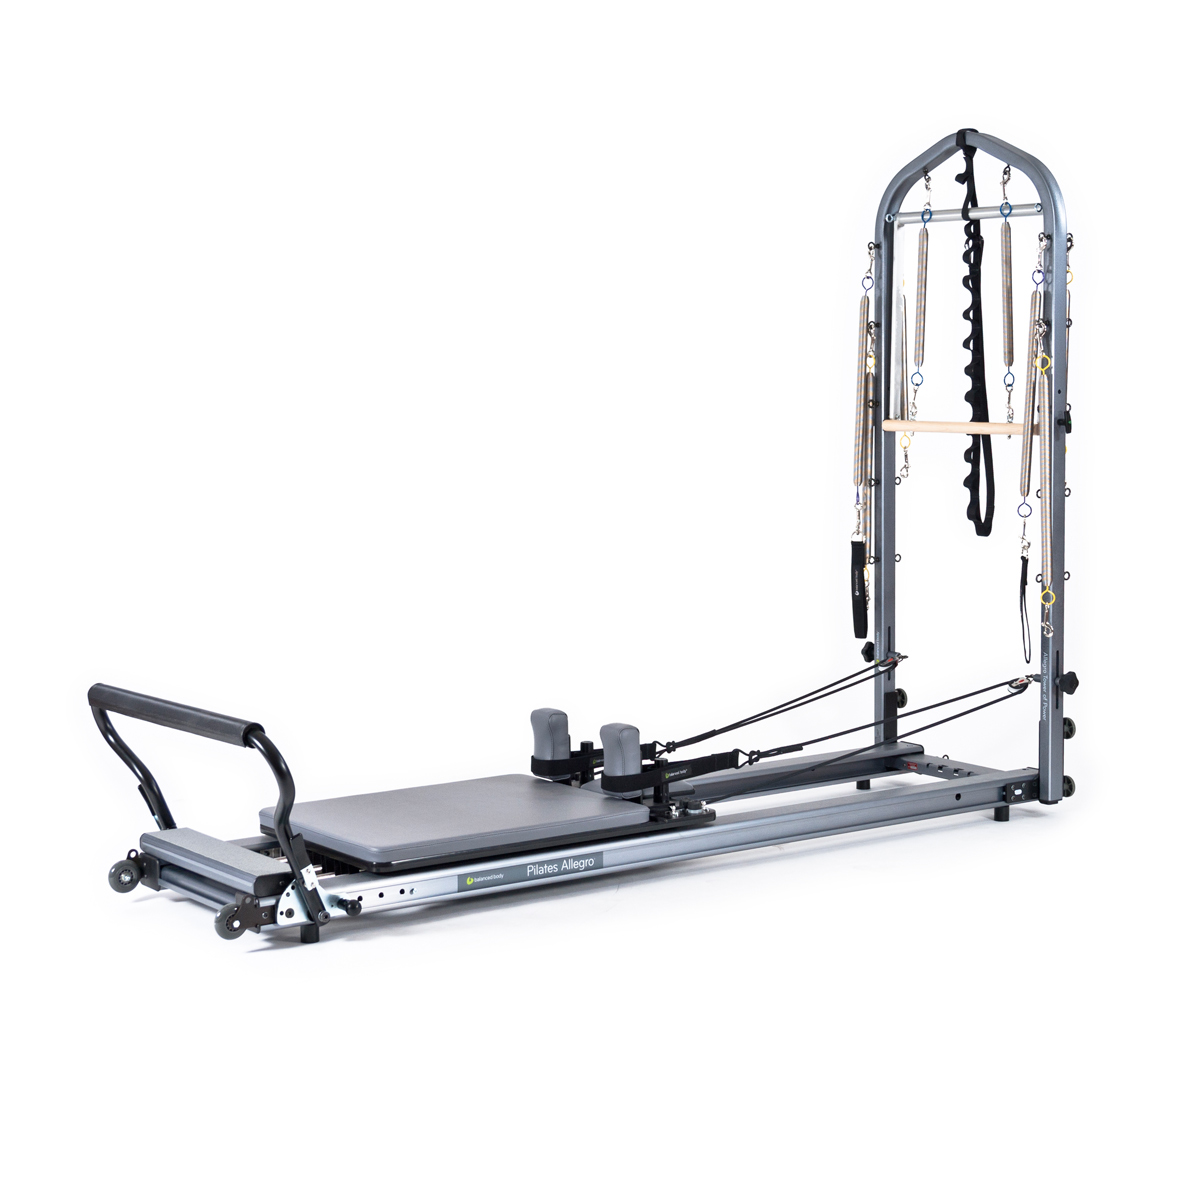 New Pilates Allegro 1 Reformer Tower of Power Balanced Body®